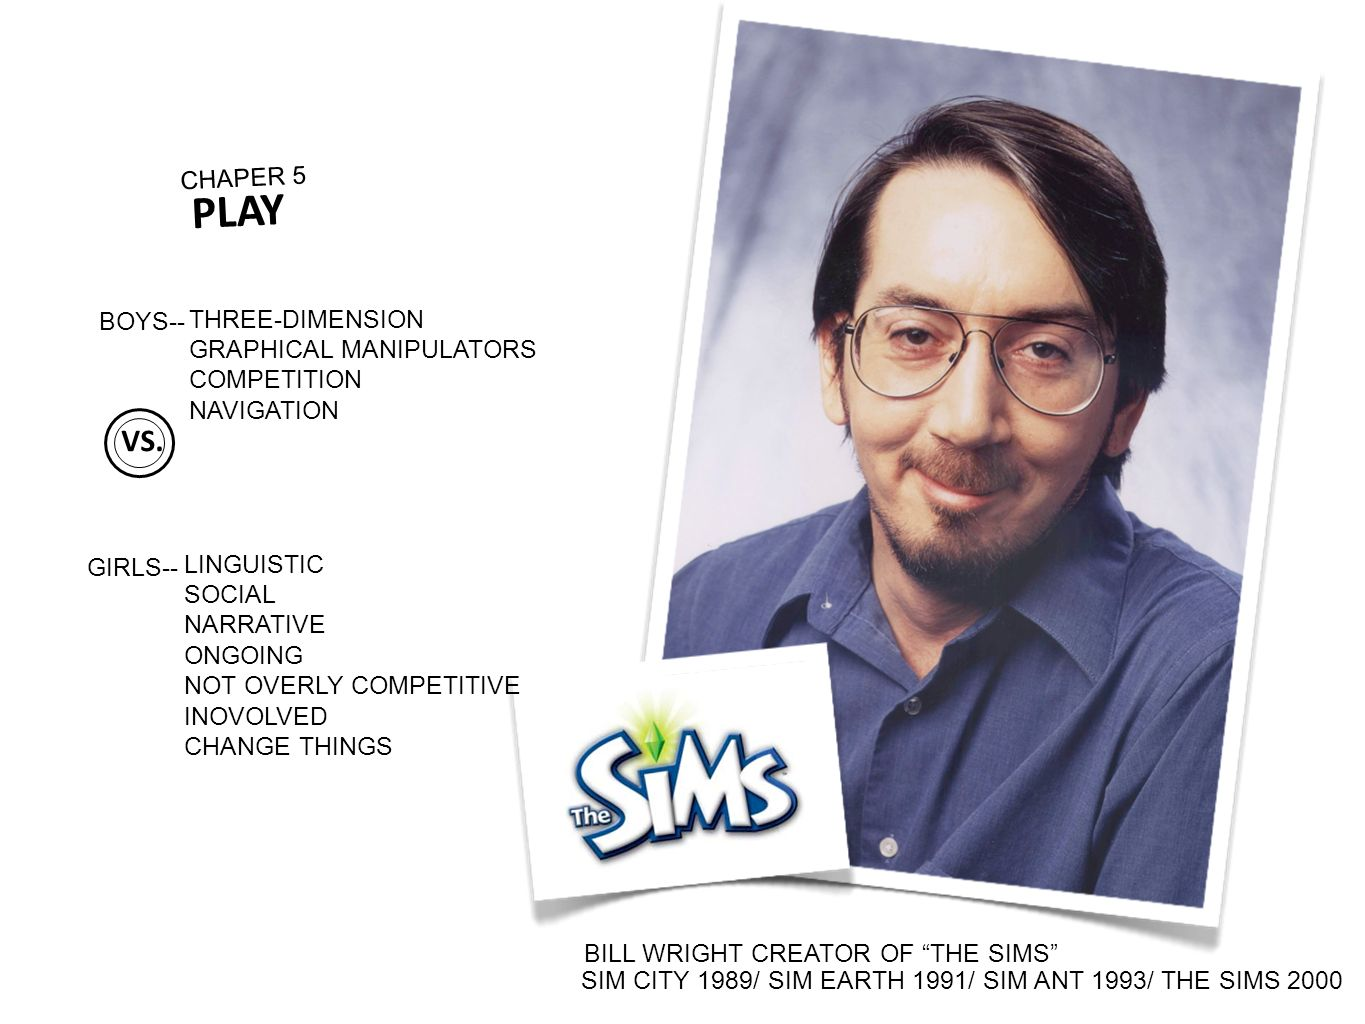 PLAY CHAPER 5 BILL WRIGHT CREATOR OF THE SIMS SIM CITY 1989/ SIM EARTH 1991/ SIM ANT 1993/ THE SIMS 2000 BOYS-- VS.